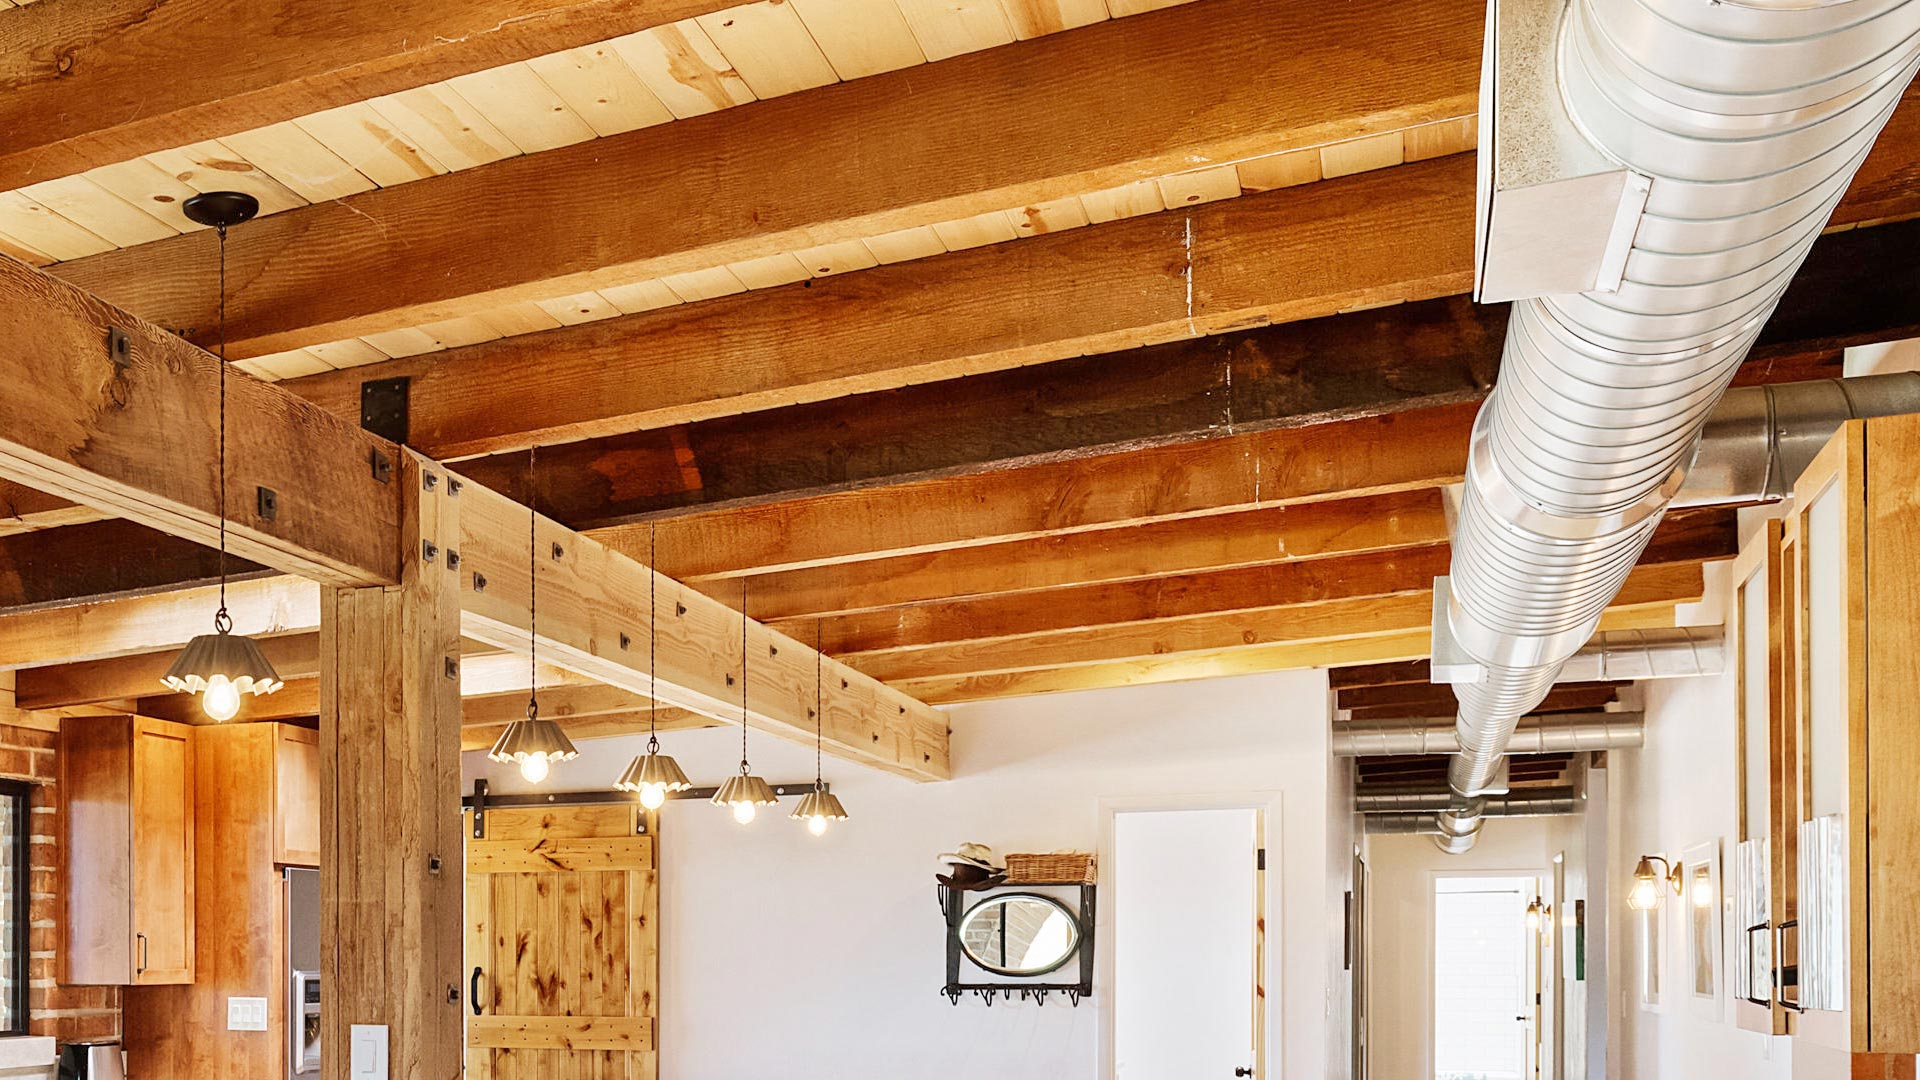 Best Air Duct Cleaning Company Los Angeles |  S & R Air Duct Cleaning Services